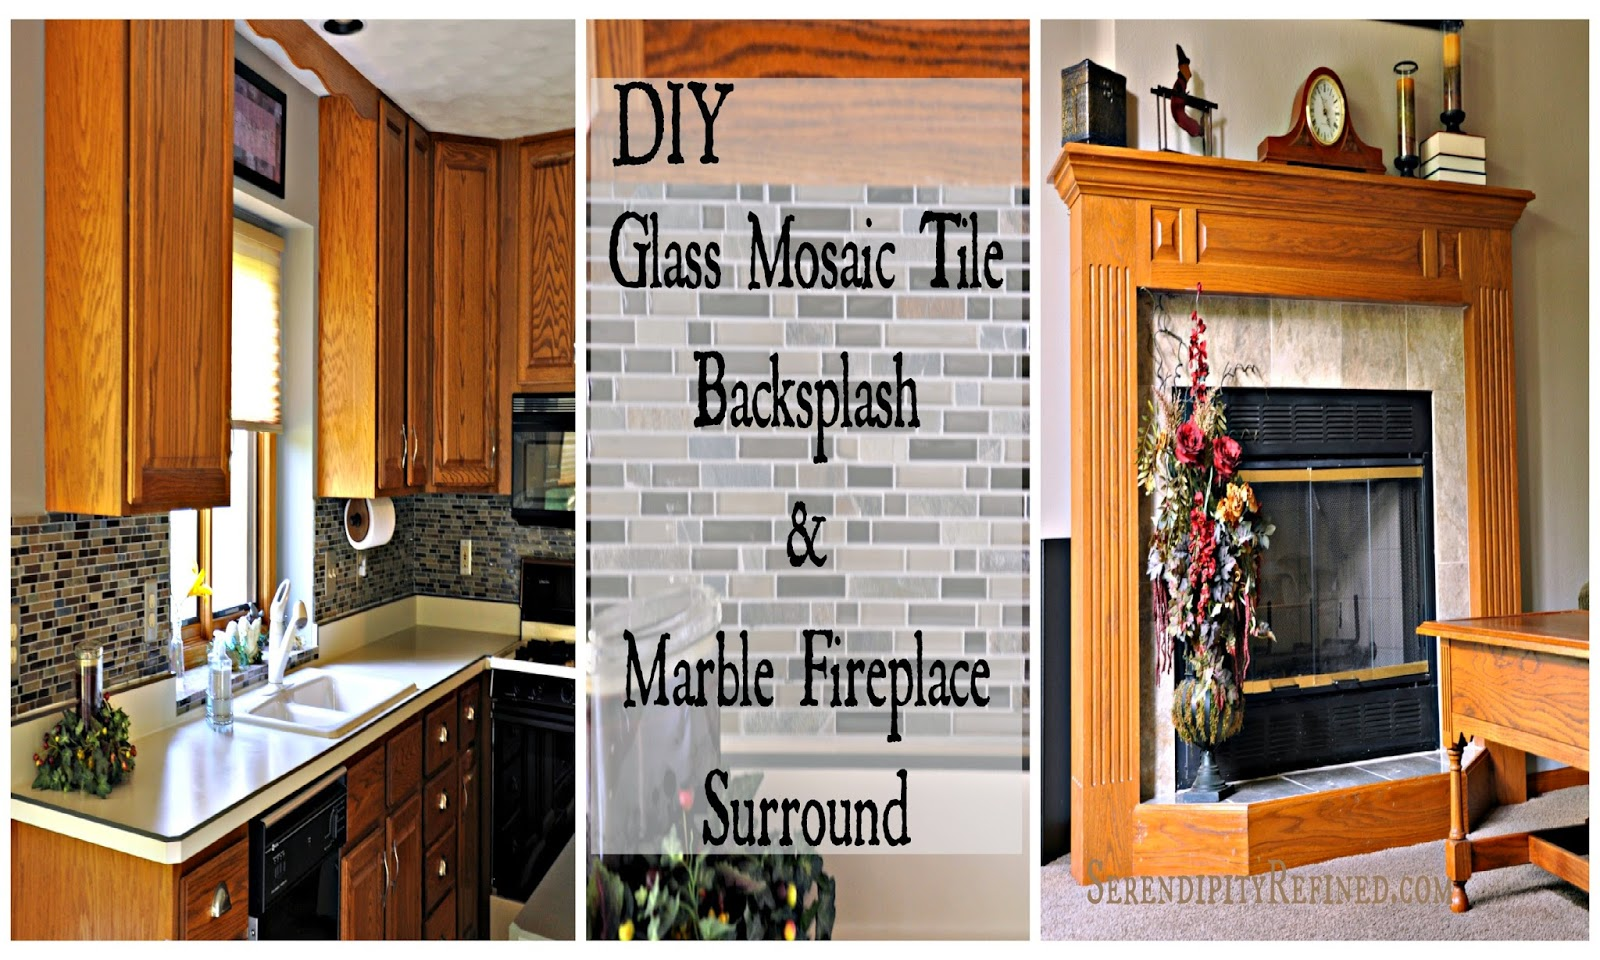 Mosaic Tile Kitchen Backsplash Serendipity Refined Blog Diy Updates Glass Mosaic Tile Kitchen